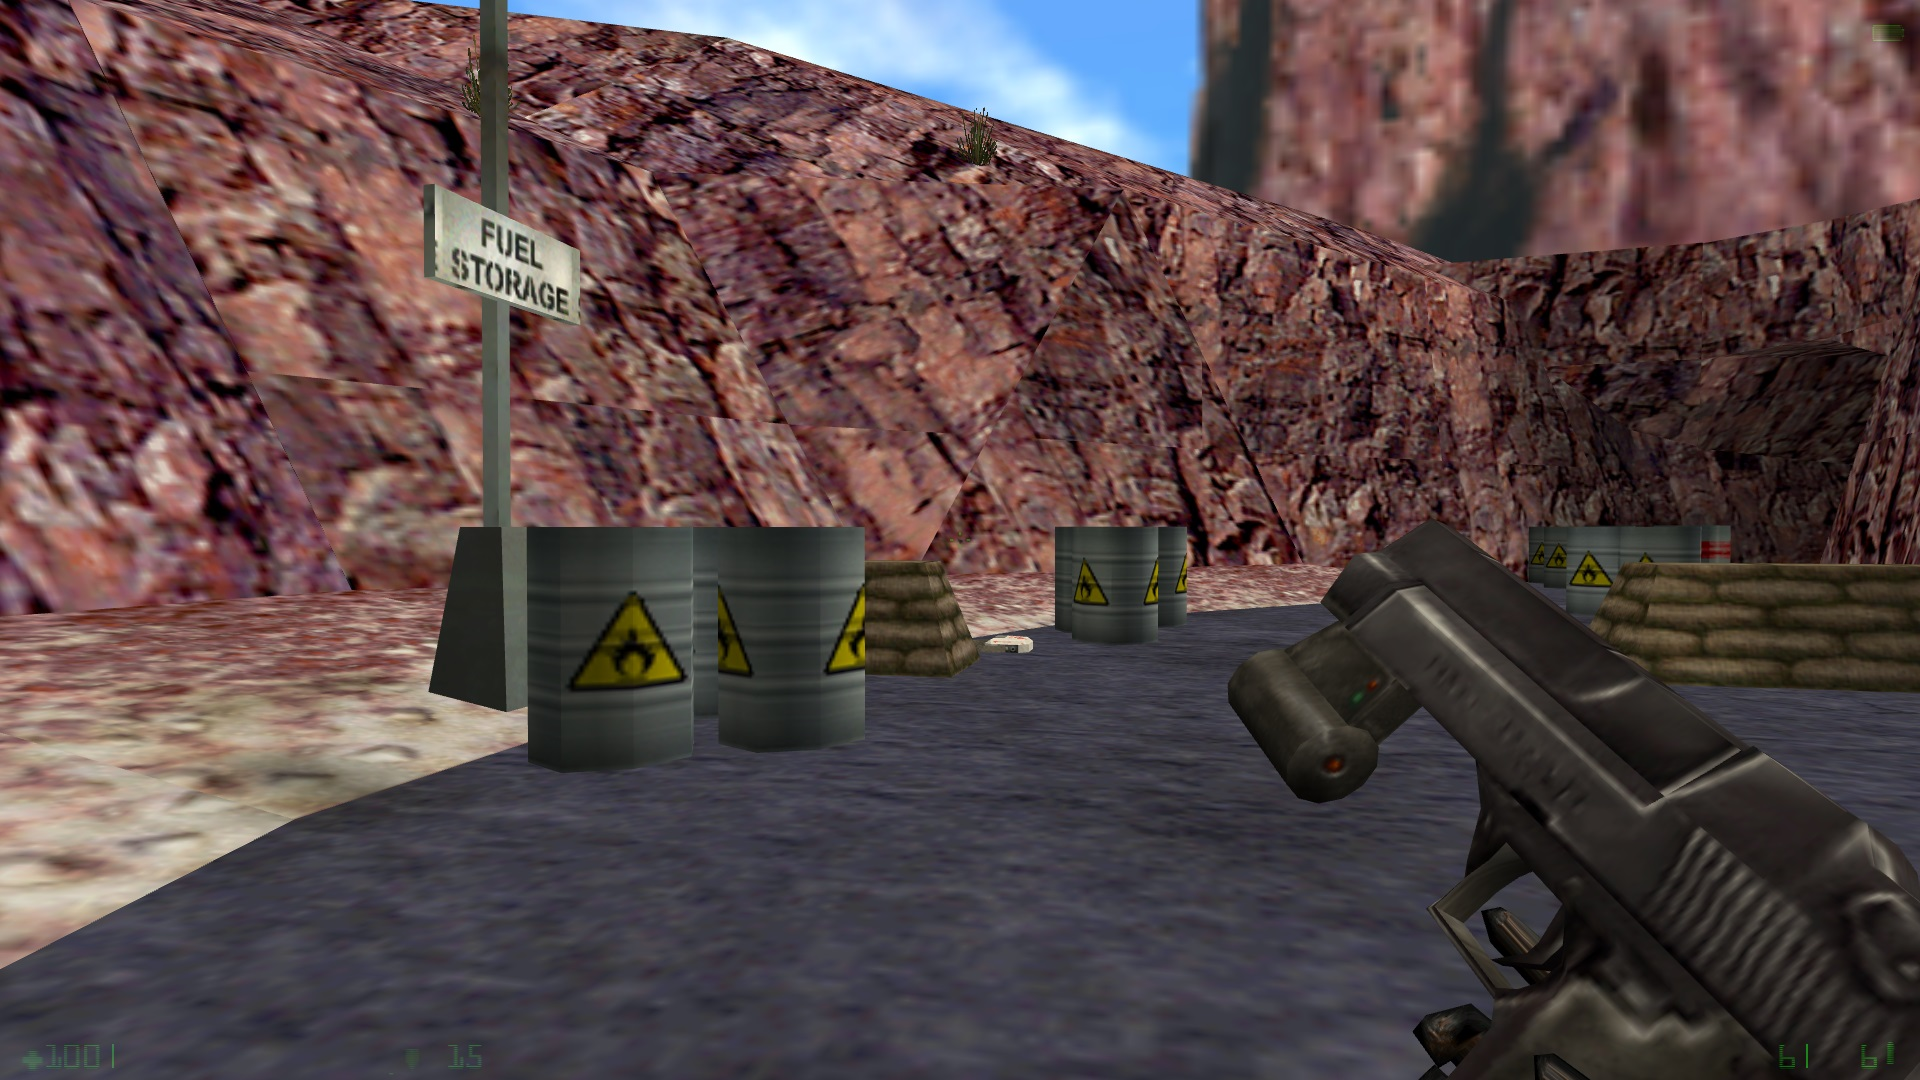 Image 5 Half Life Opposing Force Edition Mod For Half Life Mod Db